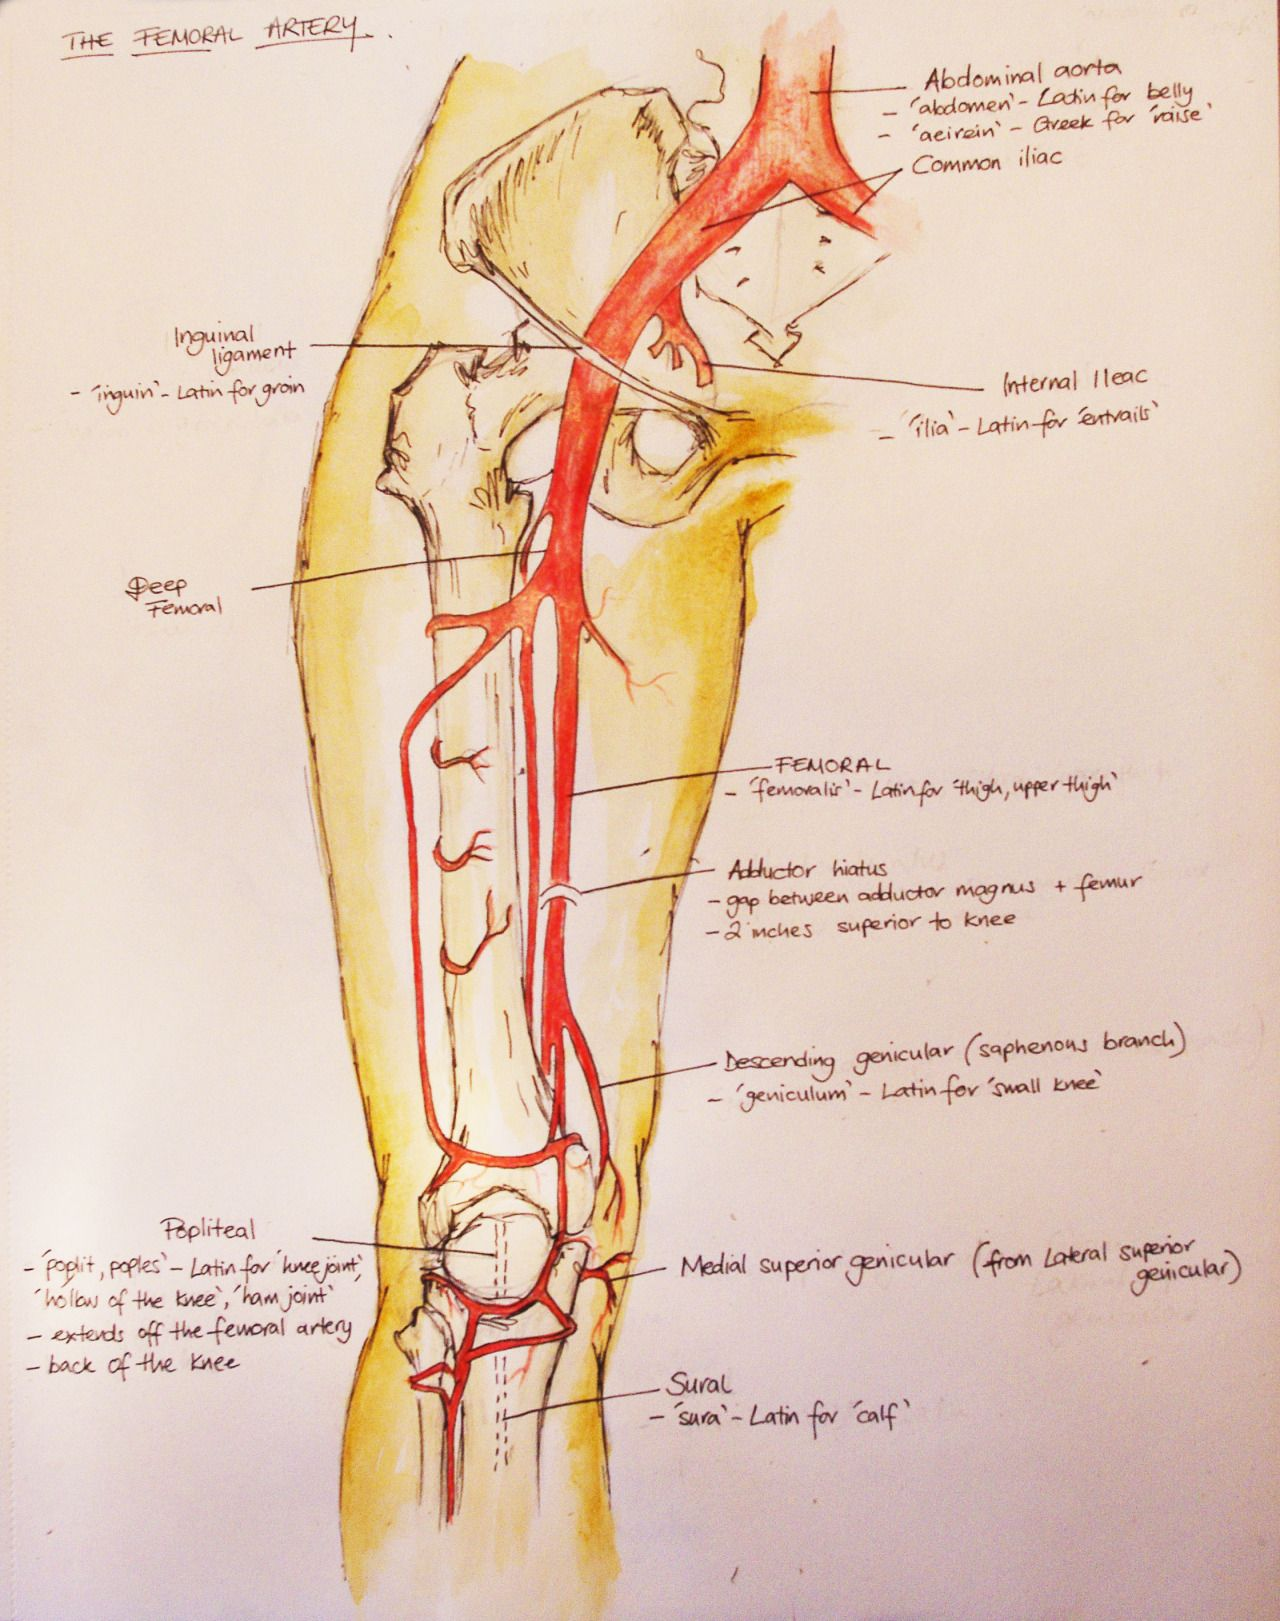 Systemic Circlation The Femoral Artery Anatomy Pinterest